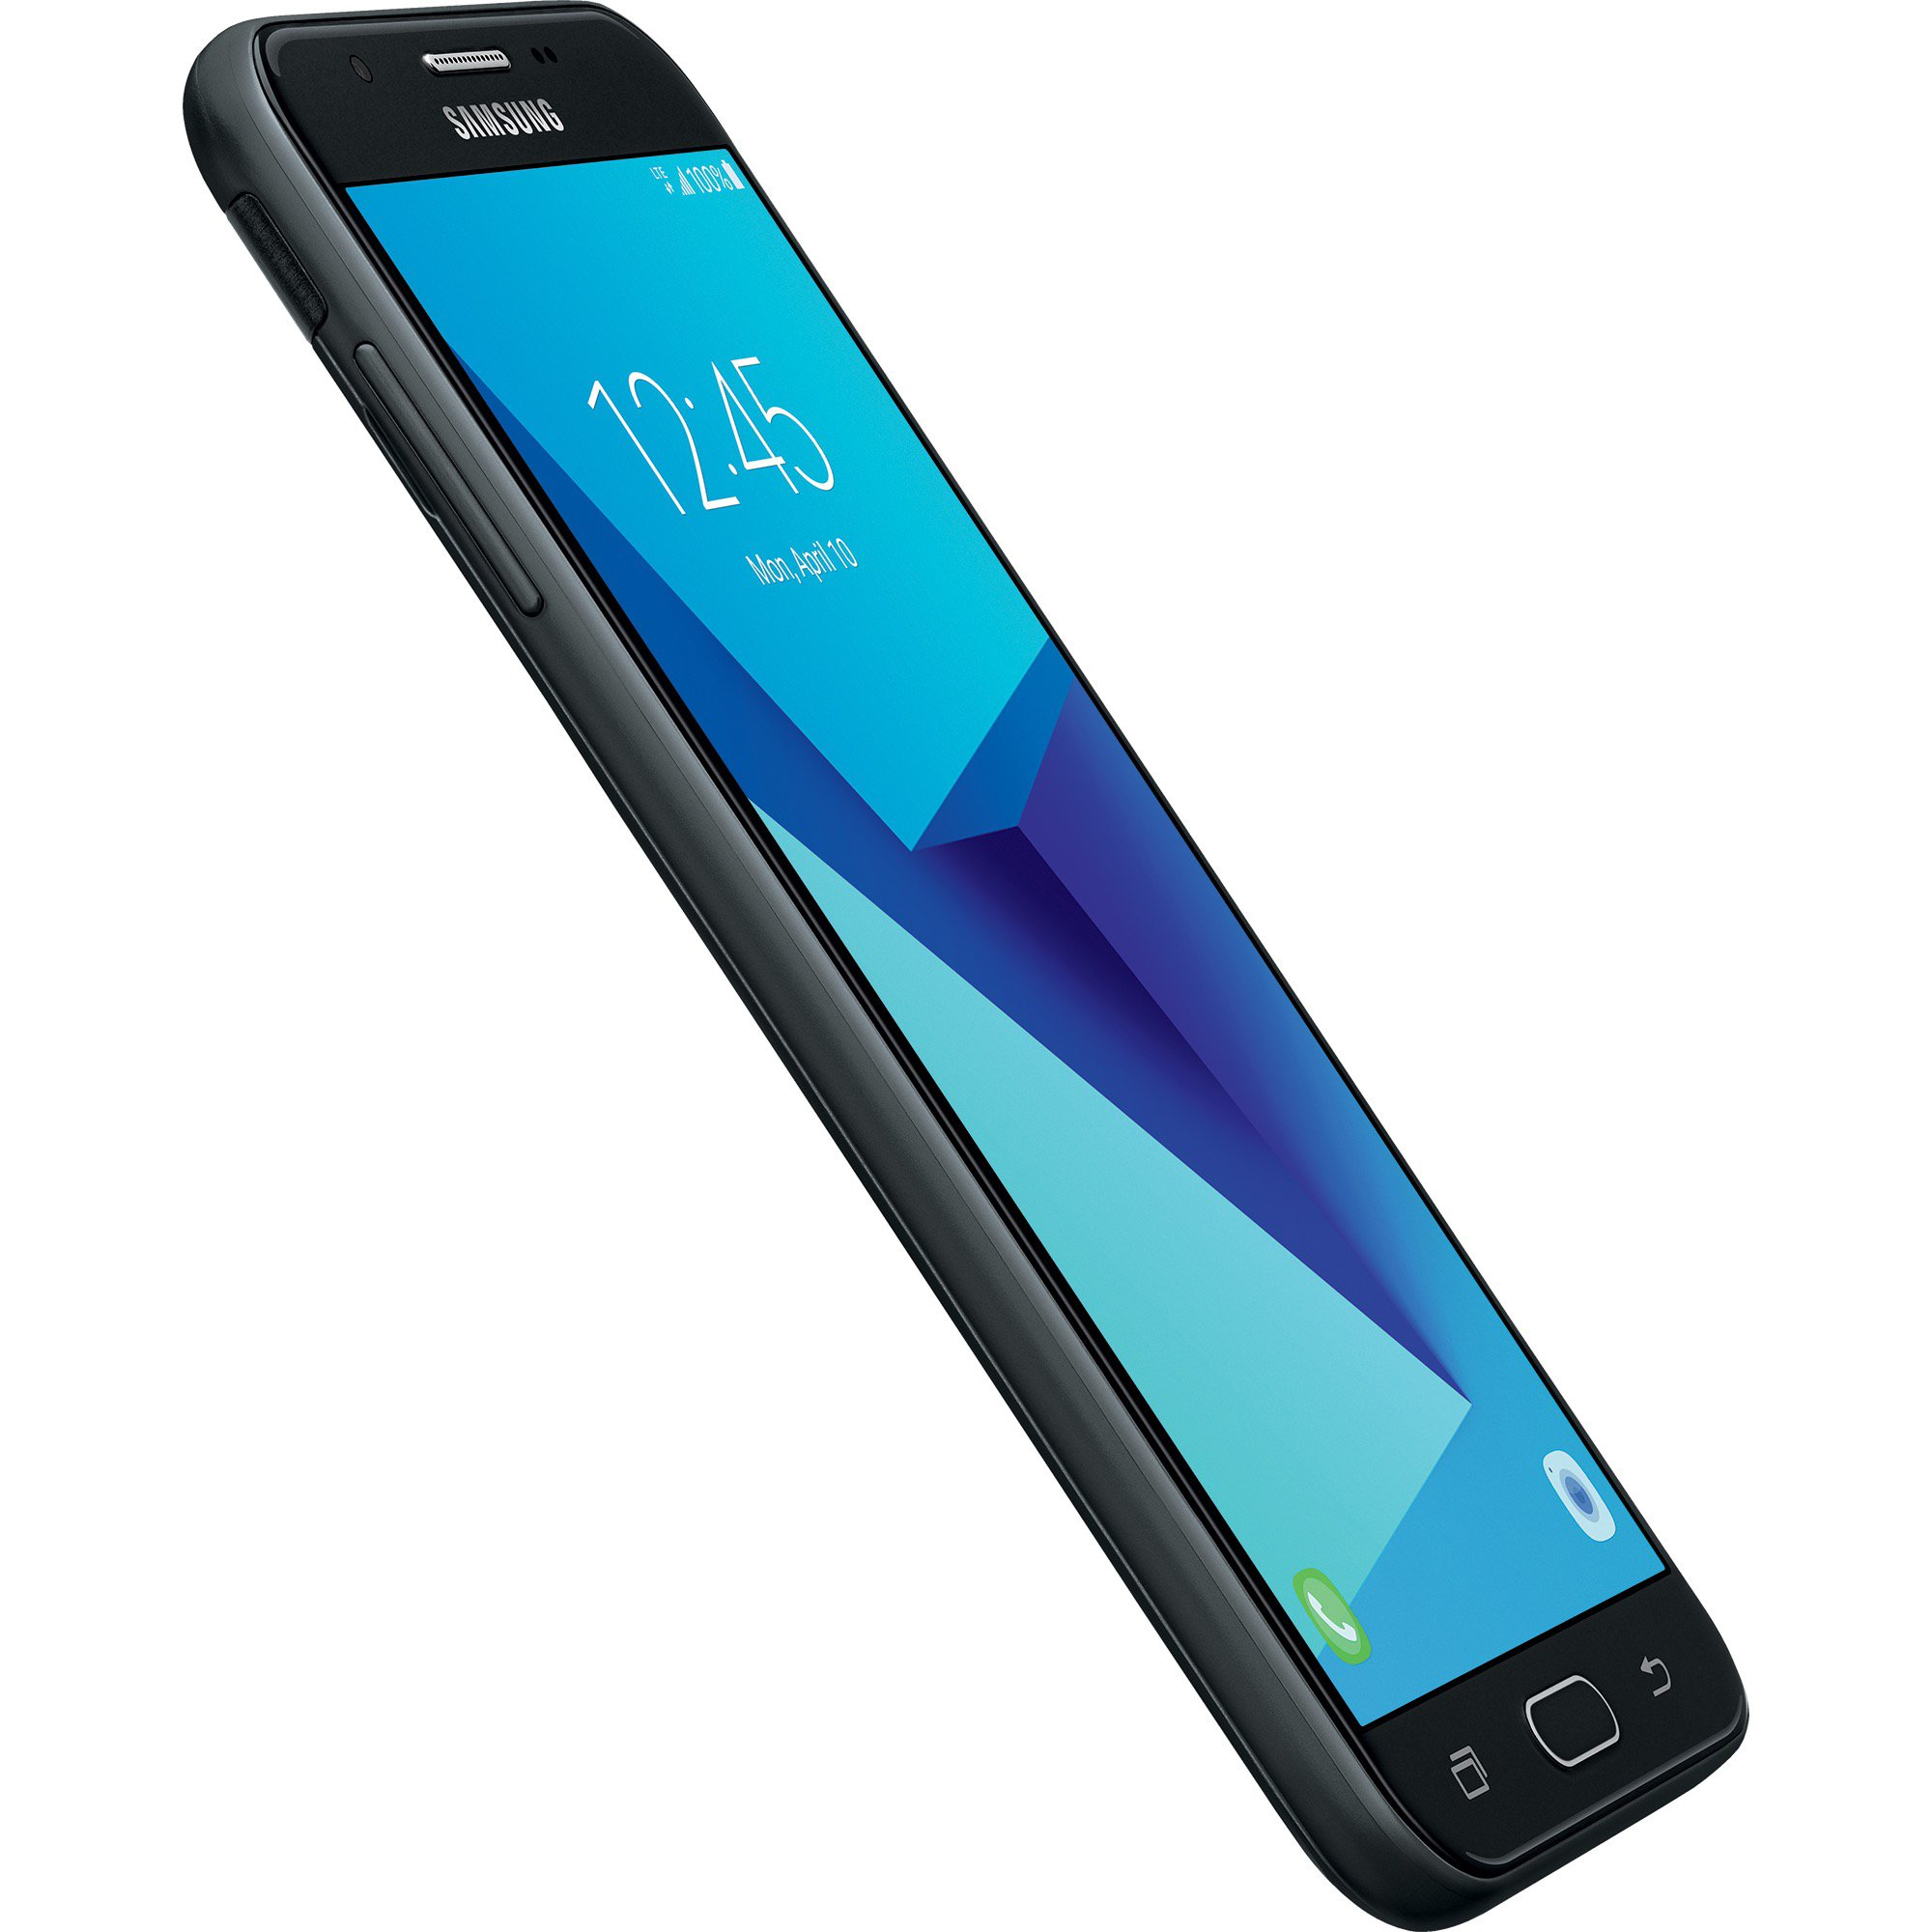 TracFone Samsung Galaxy J7 Sky Pro 4G LTE Prepaid Smartphone by TracFone (Image #3)